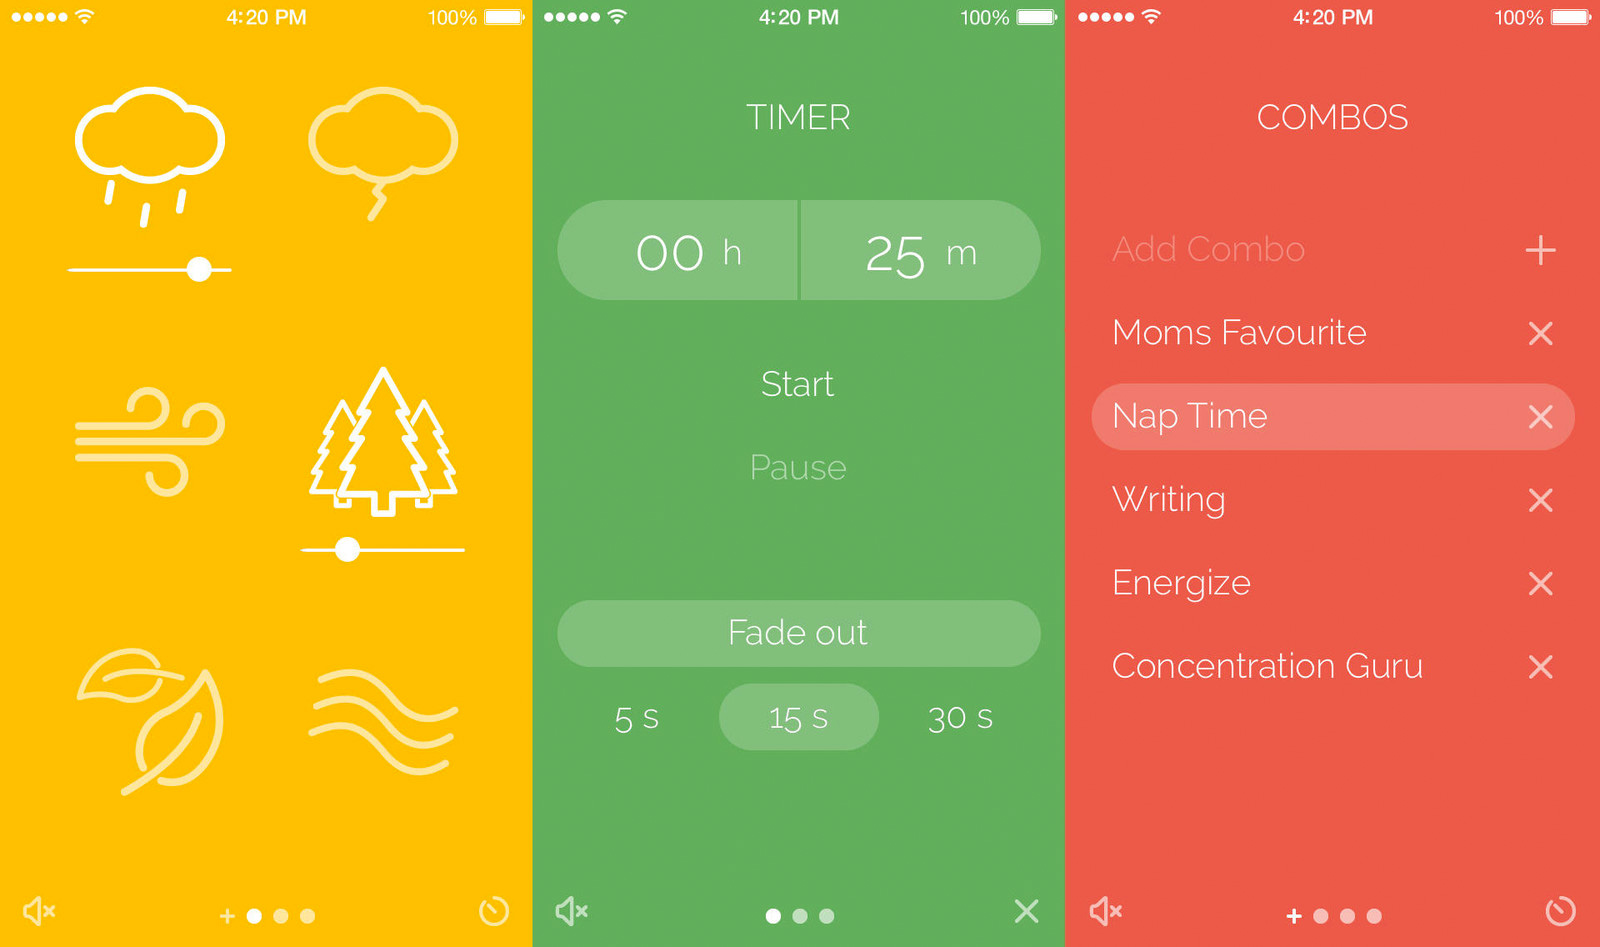 Noisli (available on the web and on iOS devices) gives you customizable white noise.